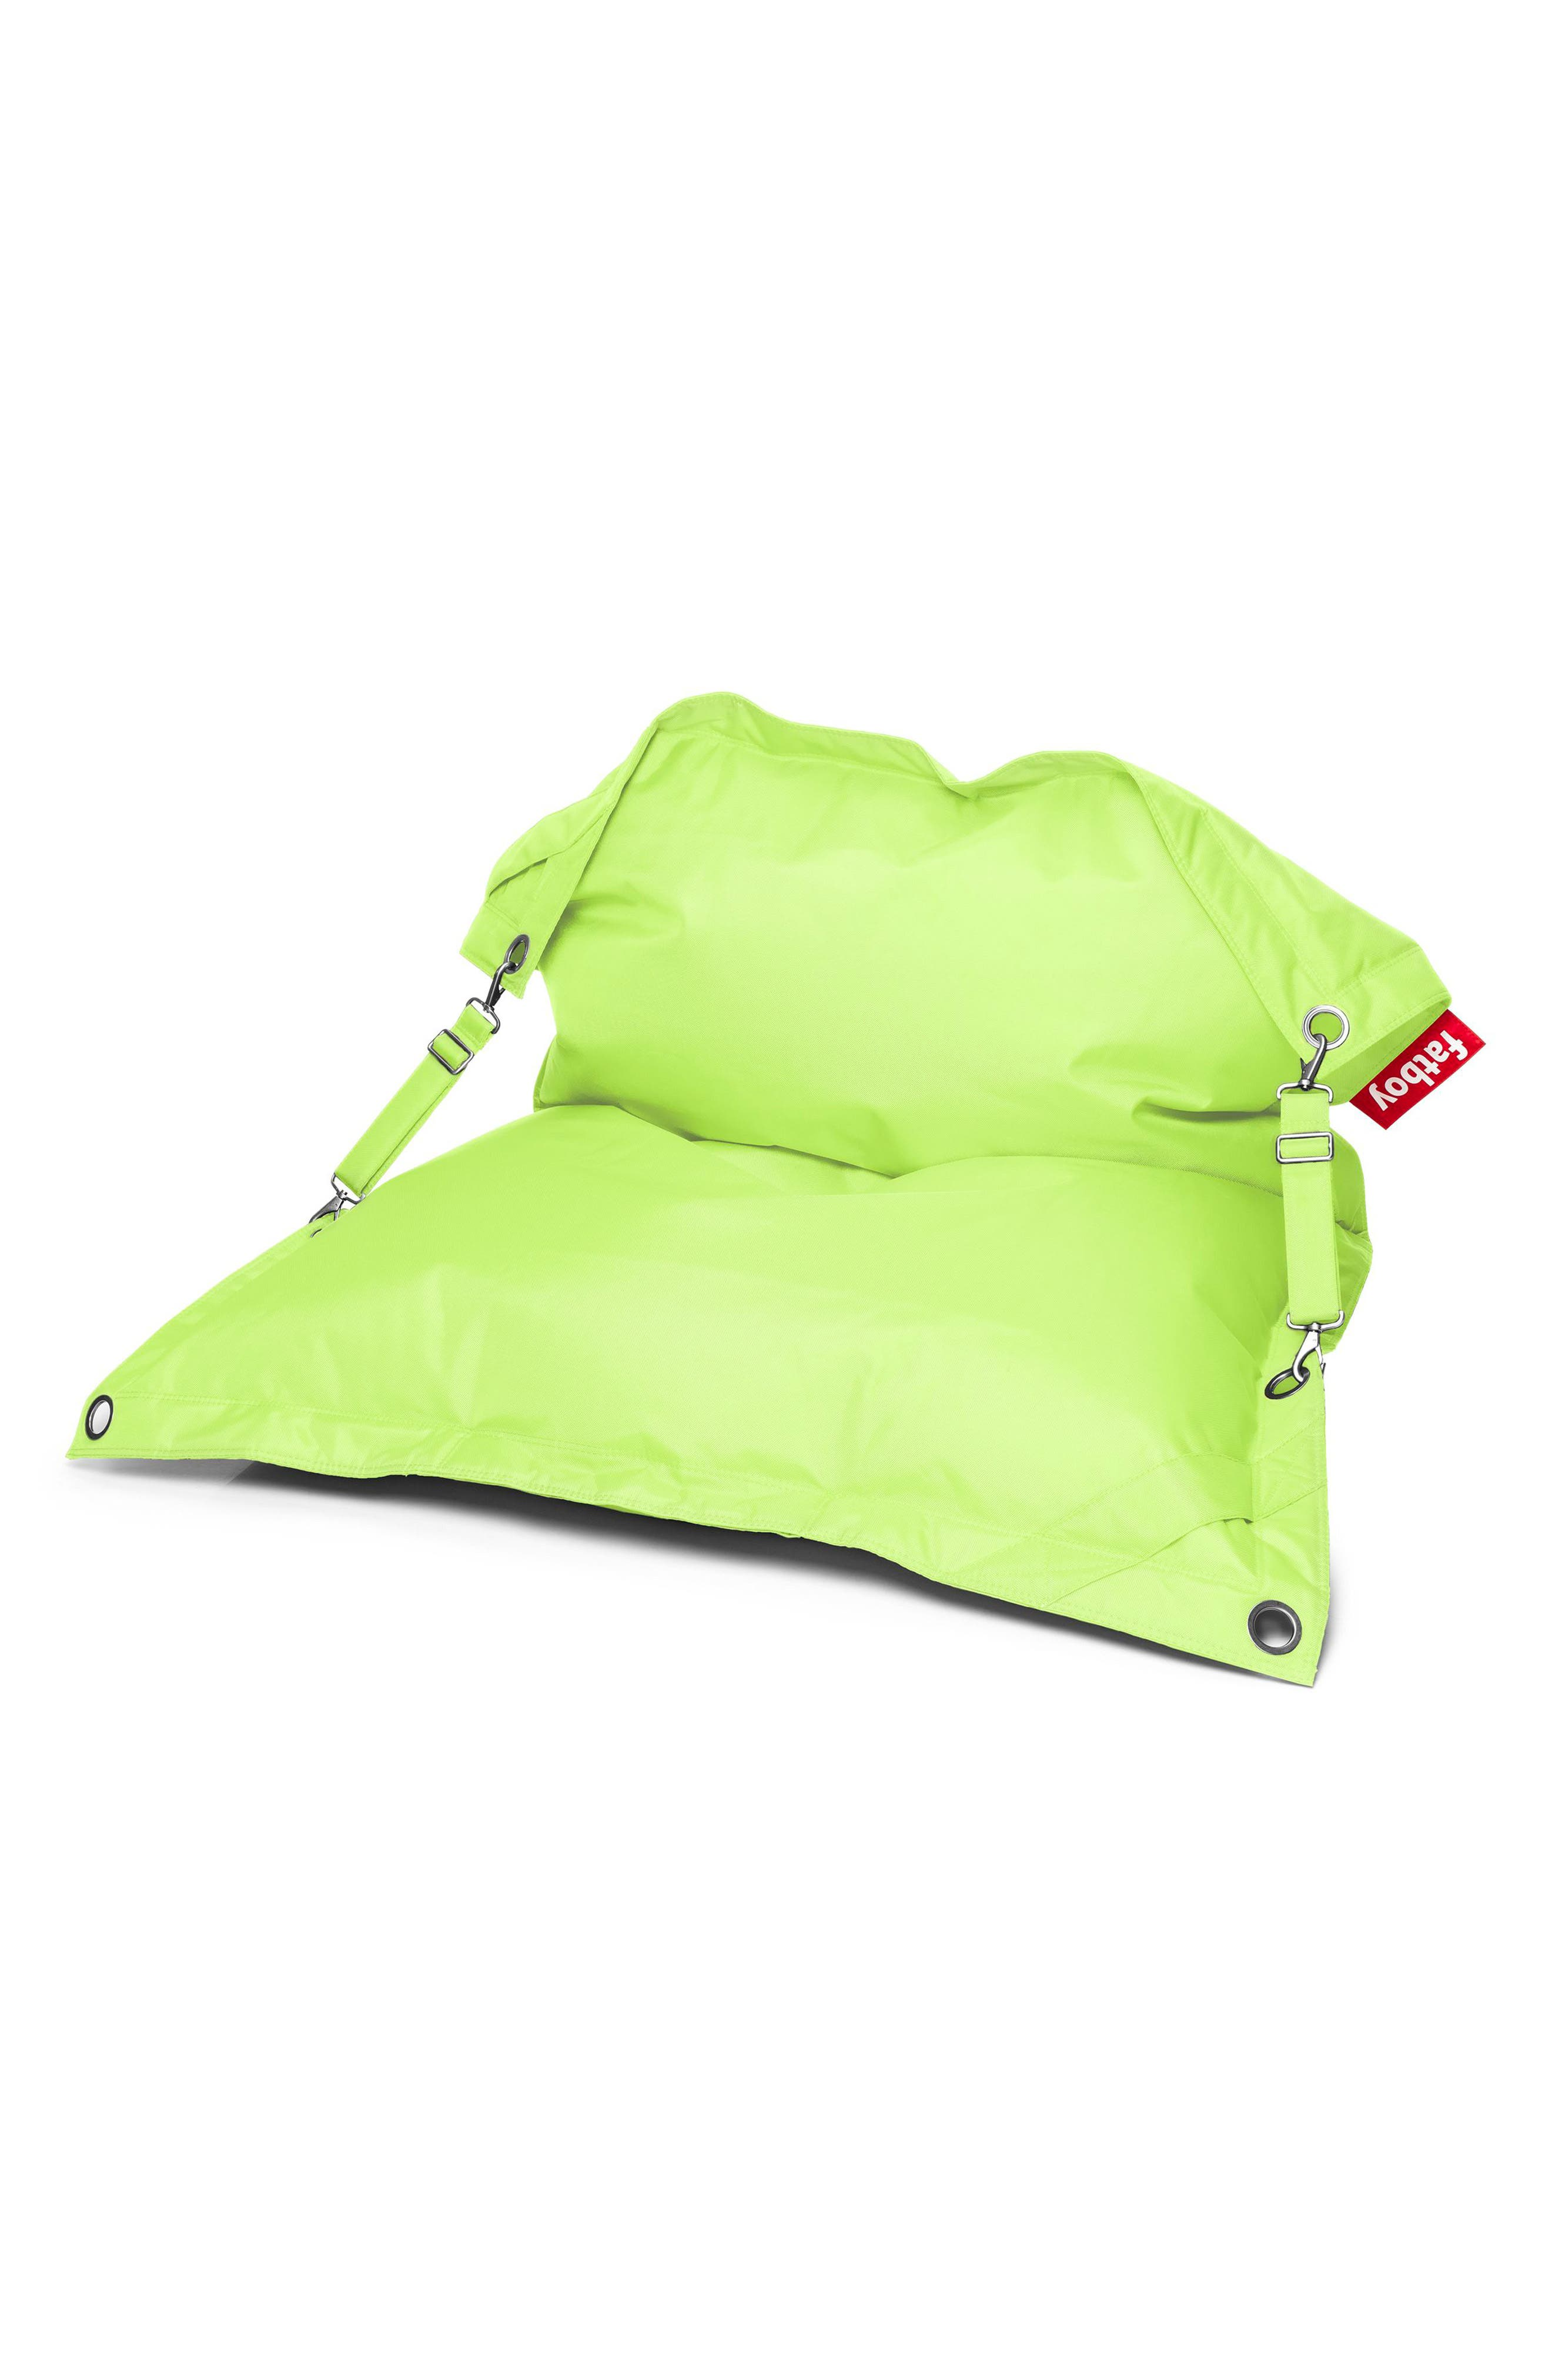 Fatboy Buggle Up Beanbag Lounge Chair